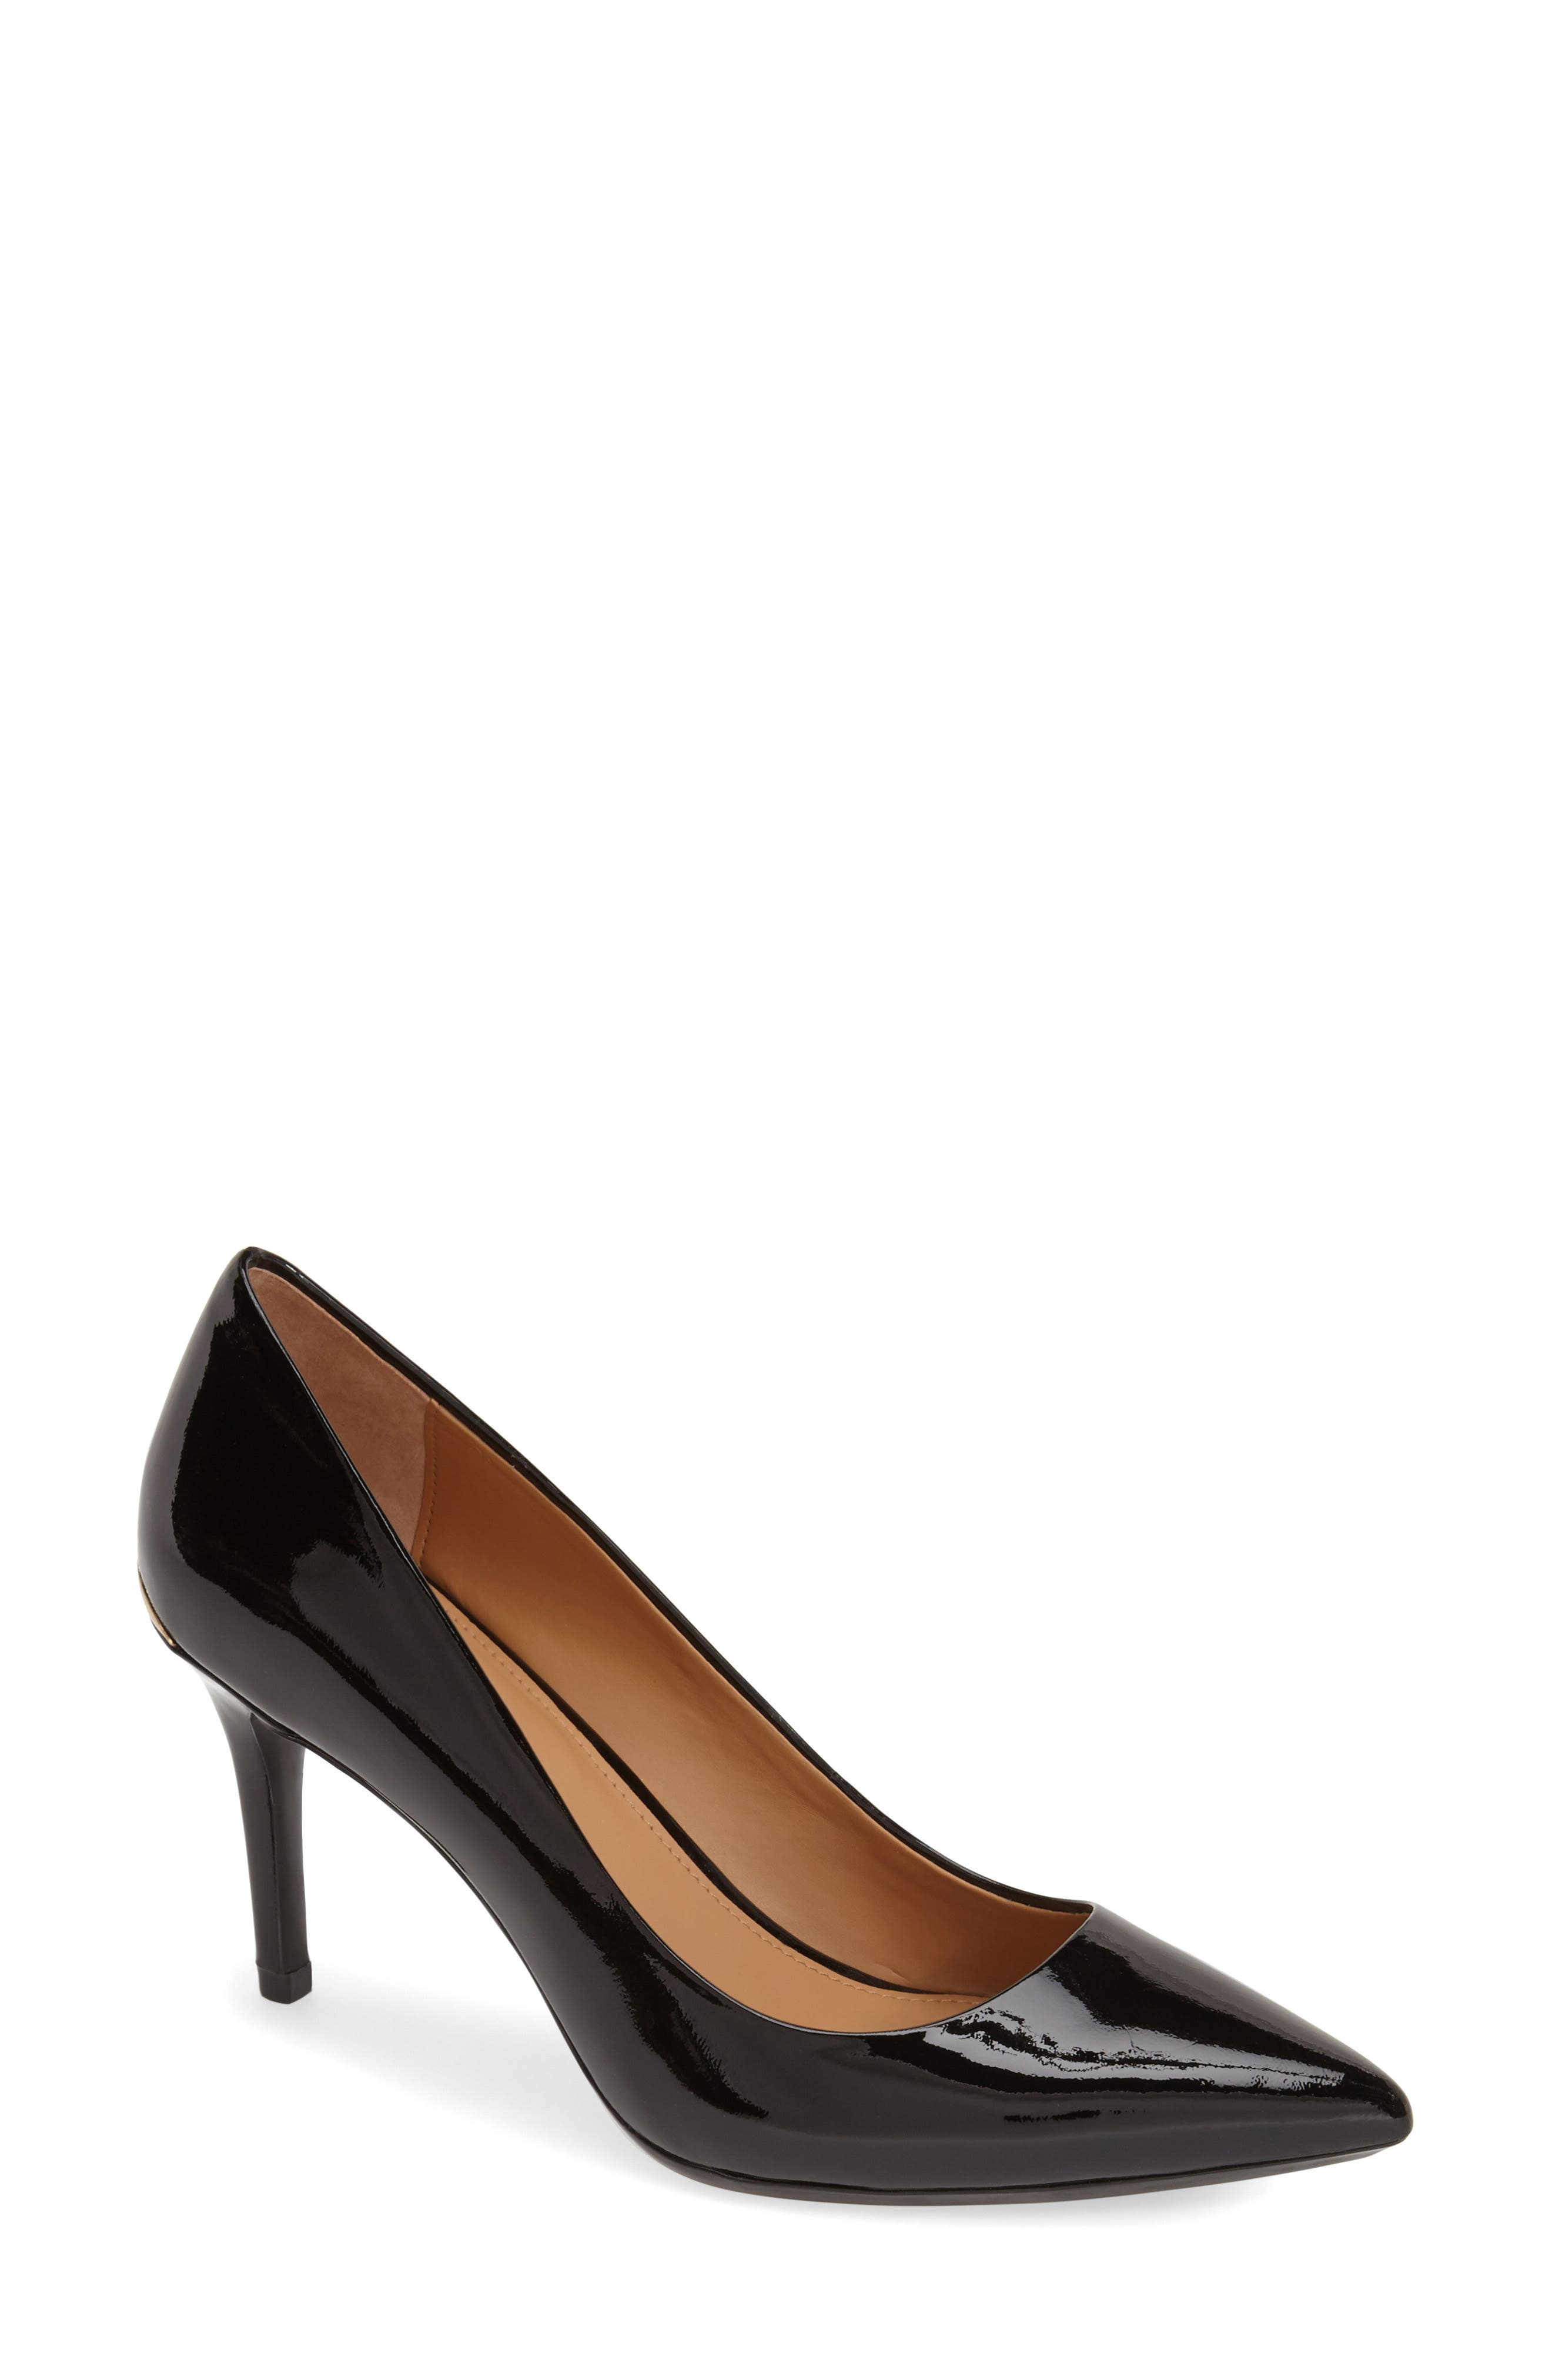 'Gayle' Pointy Toe Pump,                             Alternate thumbnail 5, color,                             BLACK PATENT